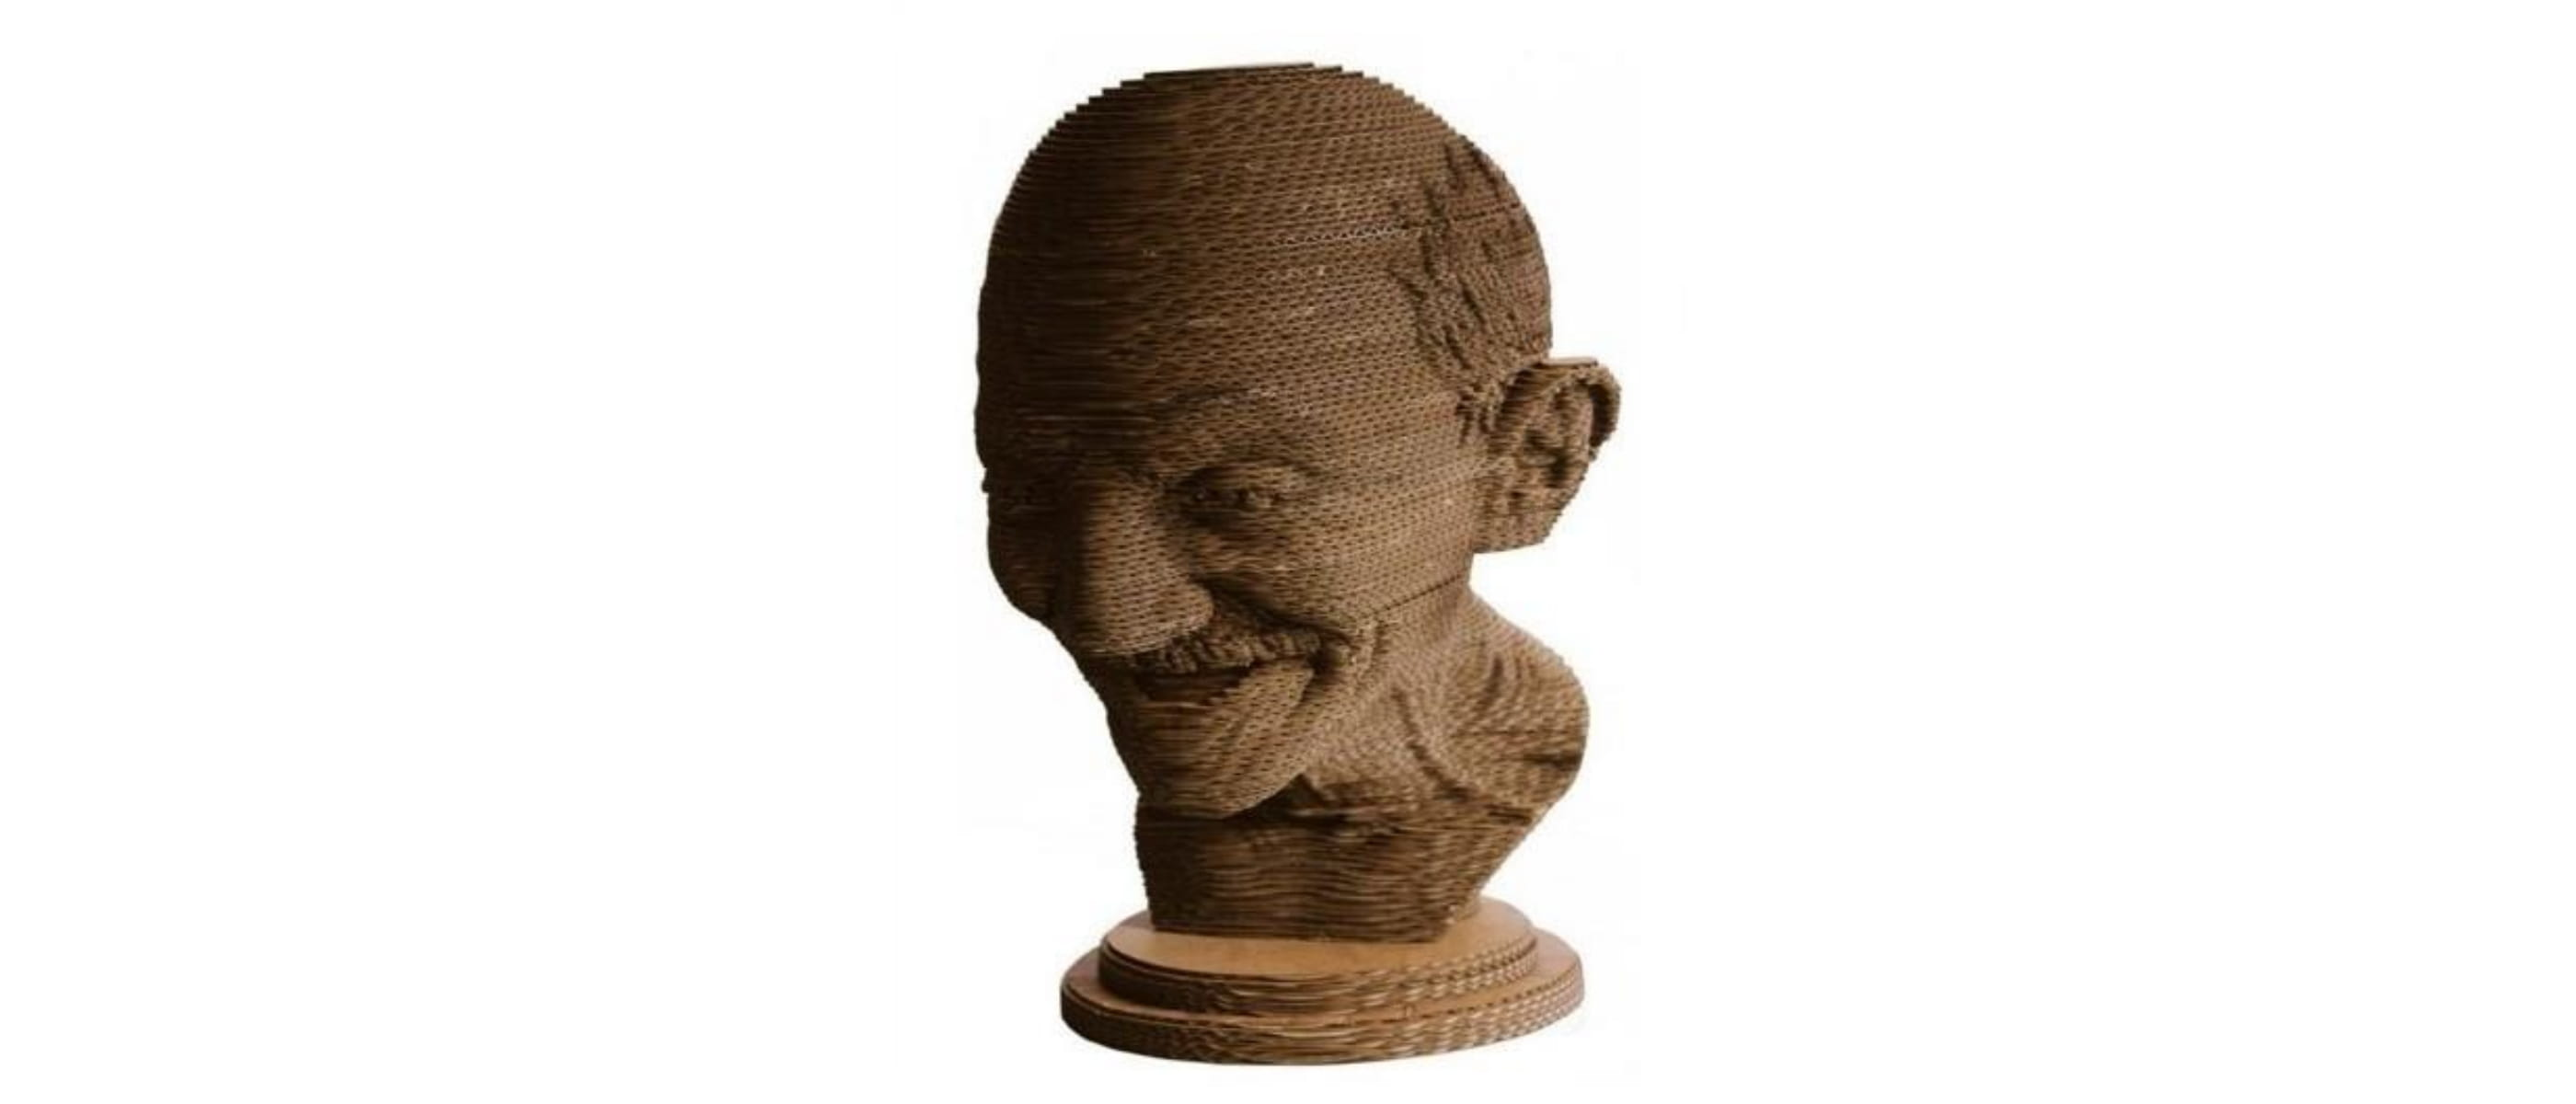 Gandhi Sculpture - Cardboard - For Raymond